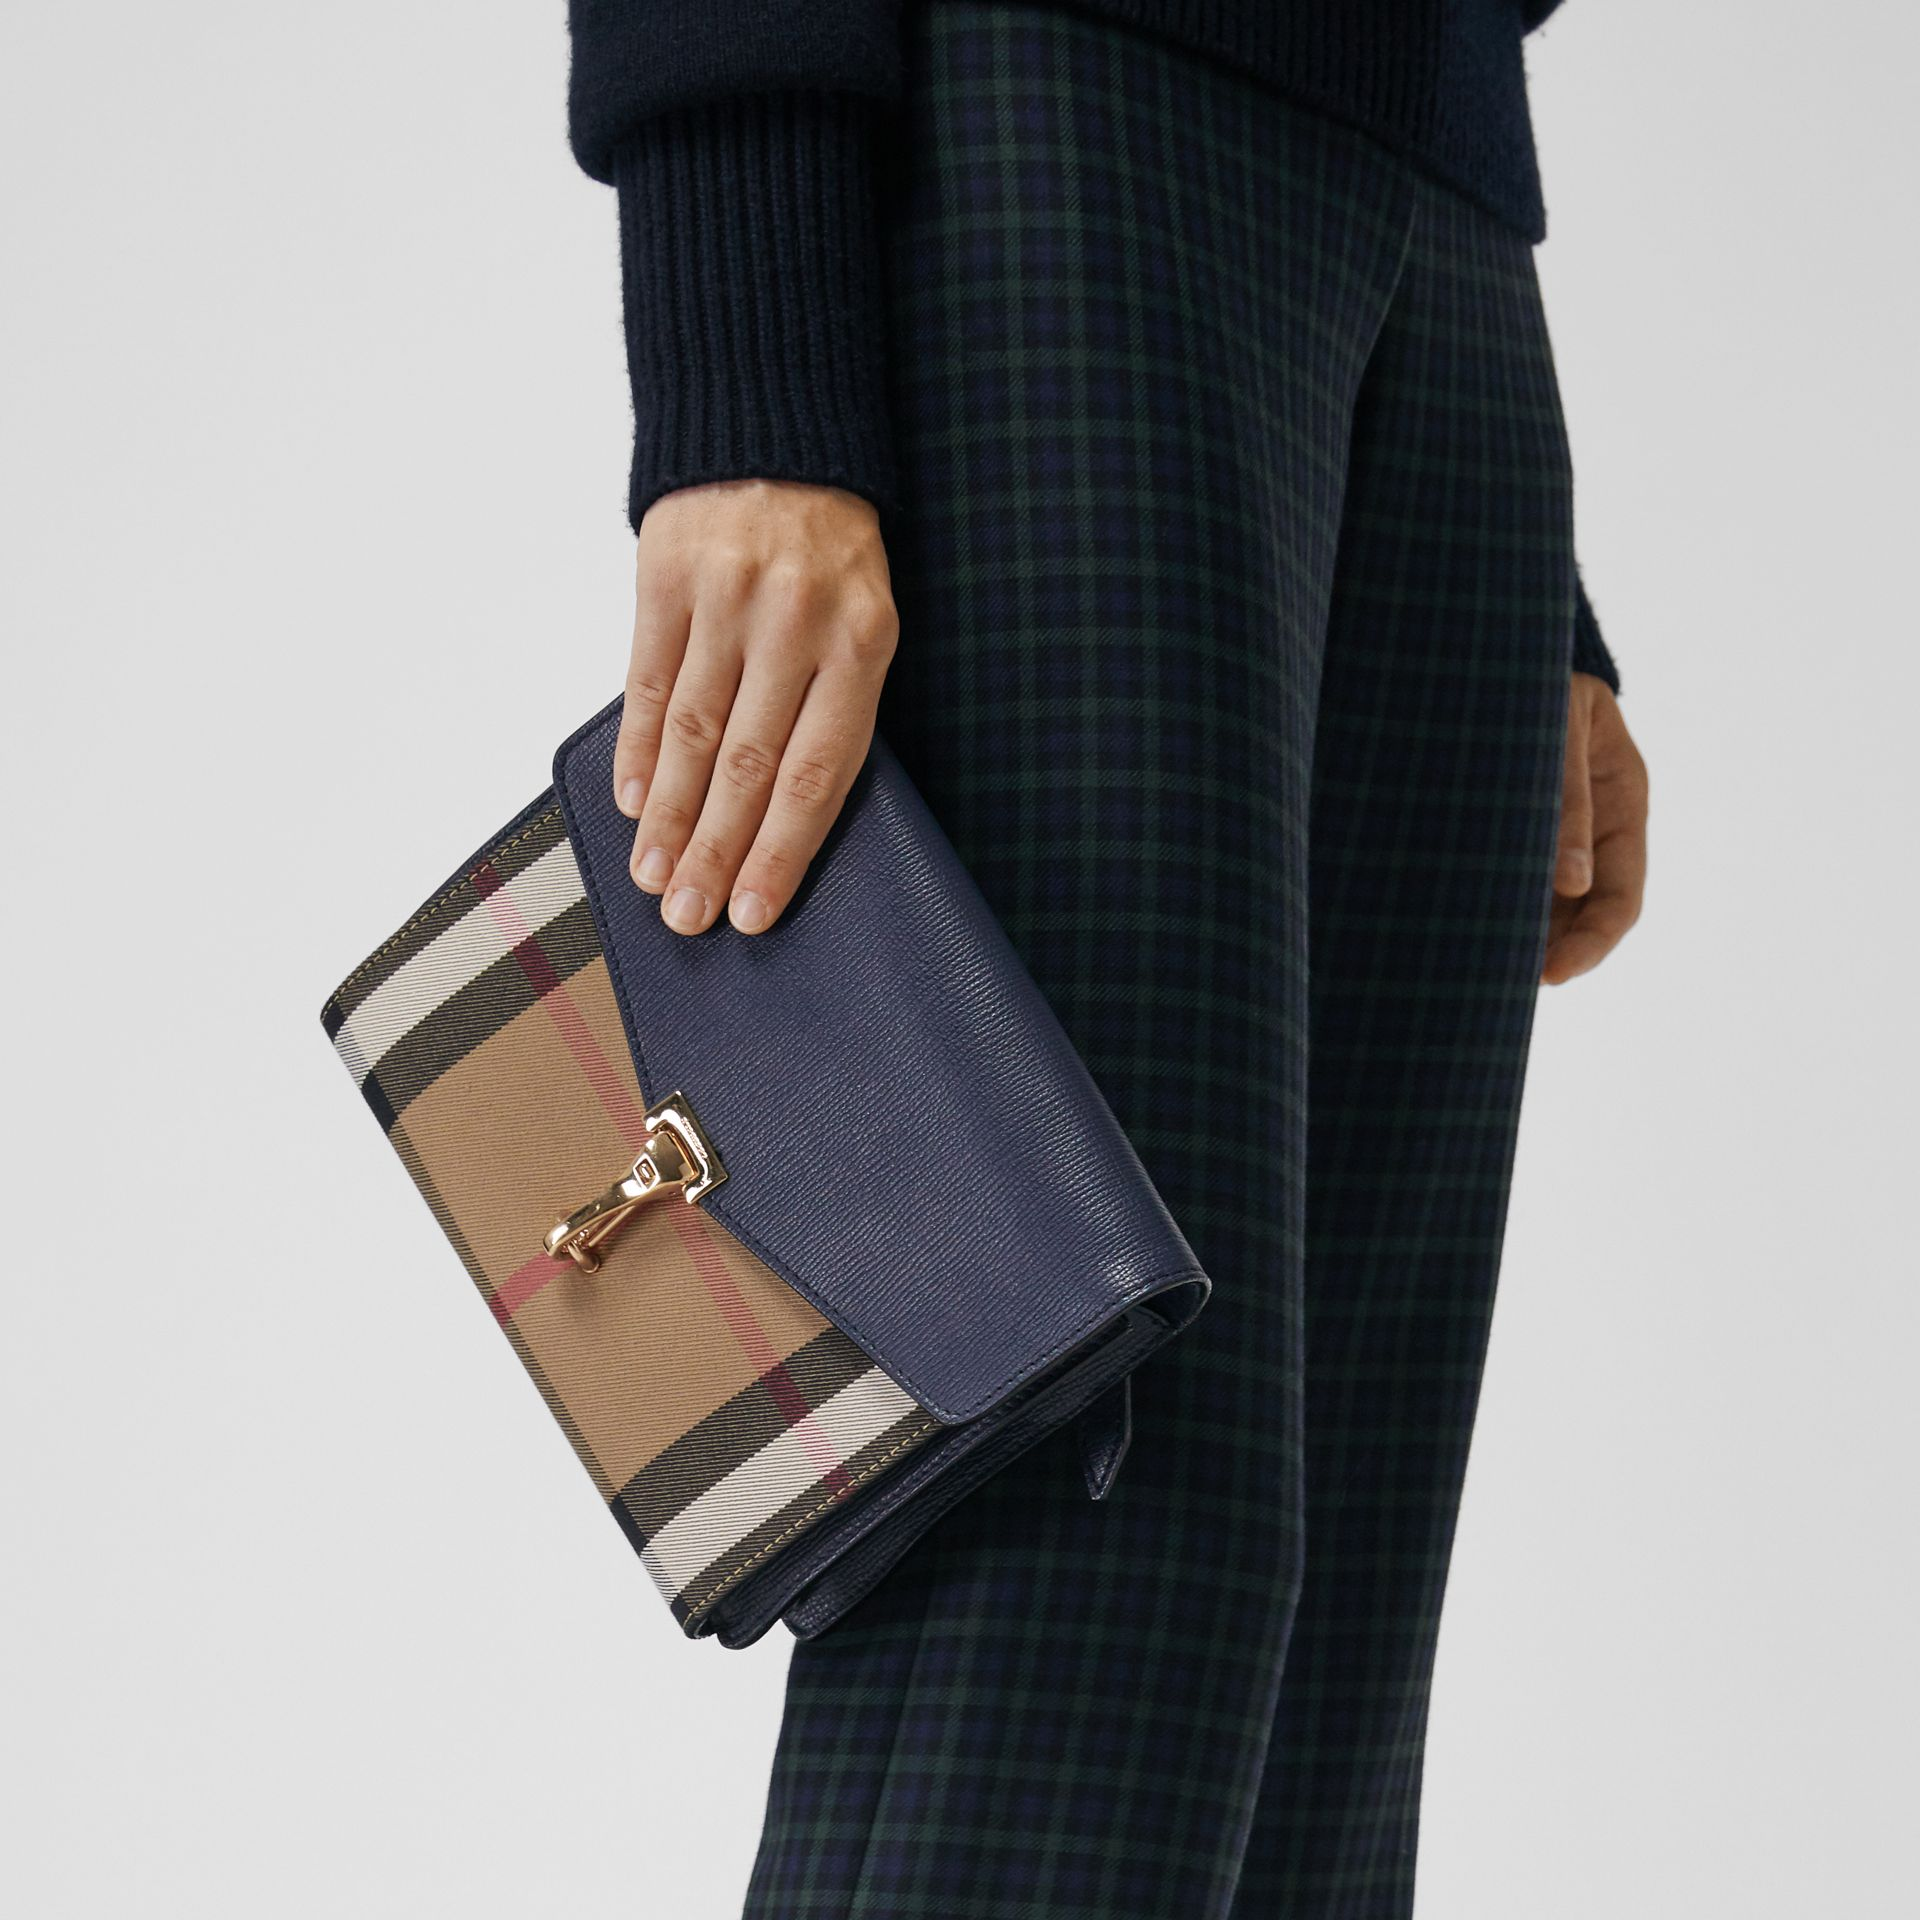 Small Leather and House Check Crossbody Bag in Ink Blue - Women | Burberry Hong Kong - gallery image 3